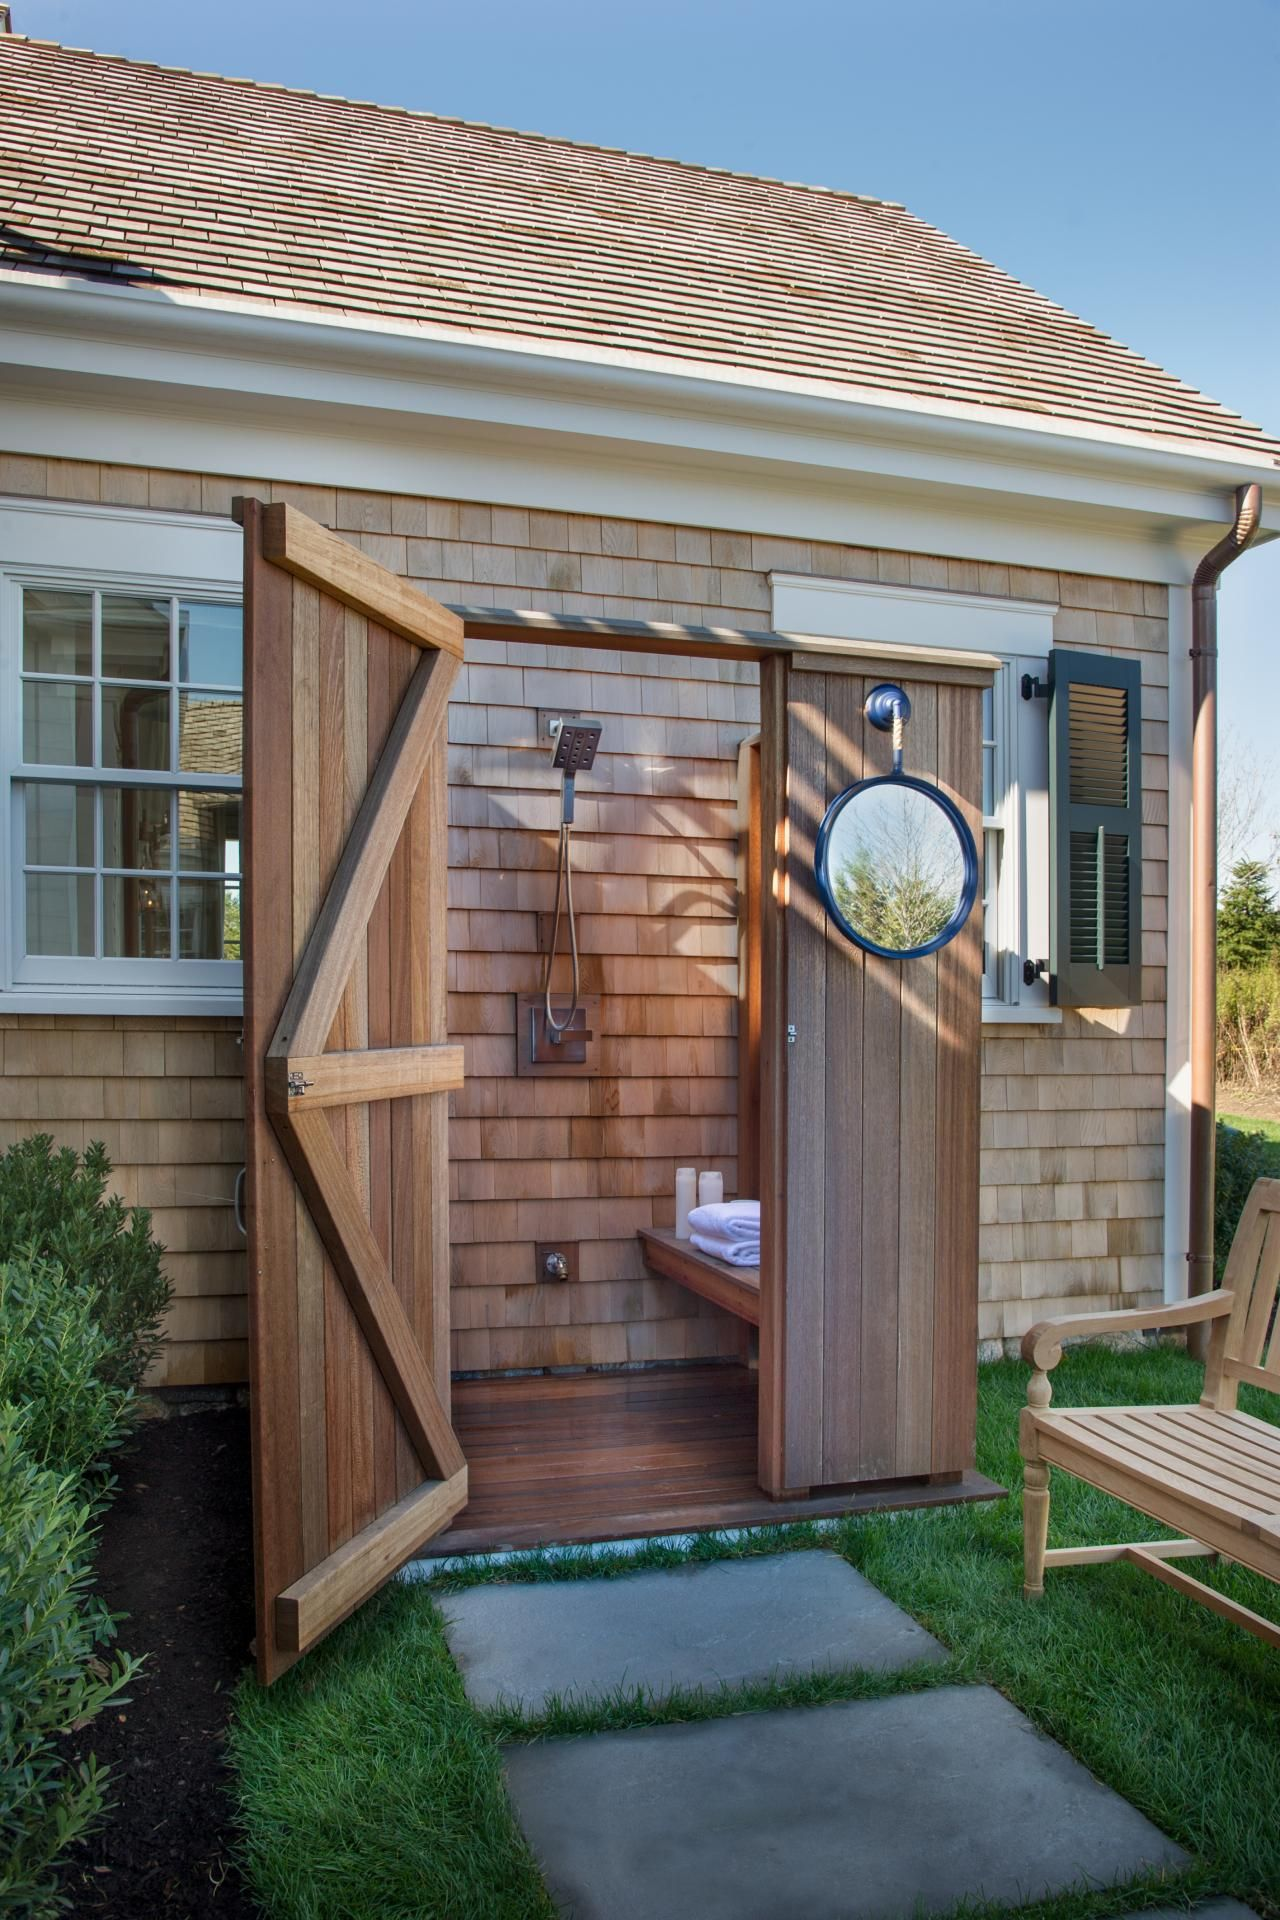 Ordinary Outdoor Shower Decorating Ideas Part - 5: 10 Simple Decorating Ideas From The HGTV Dream Home. Shower PicturesPatio  PicturesOutdoor ...